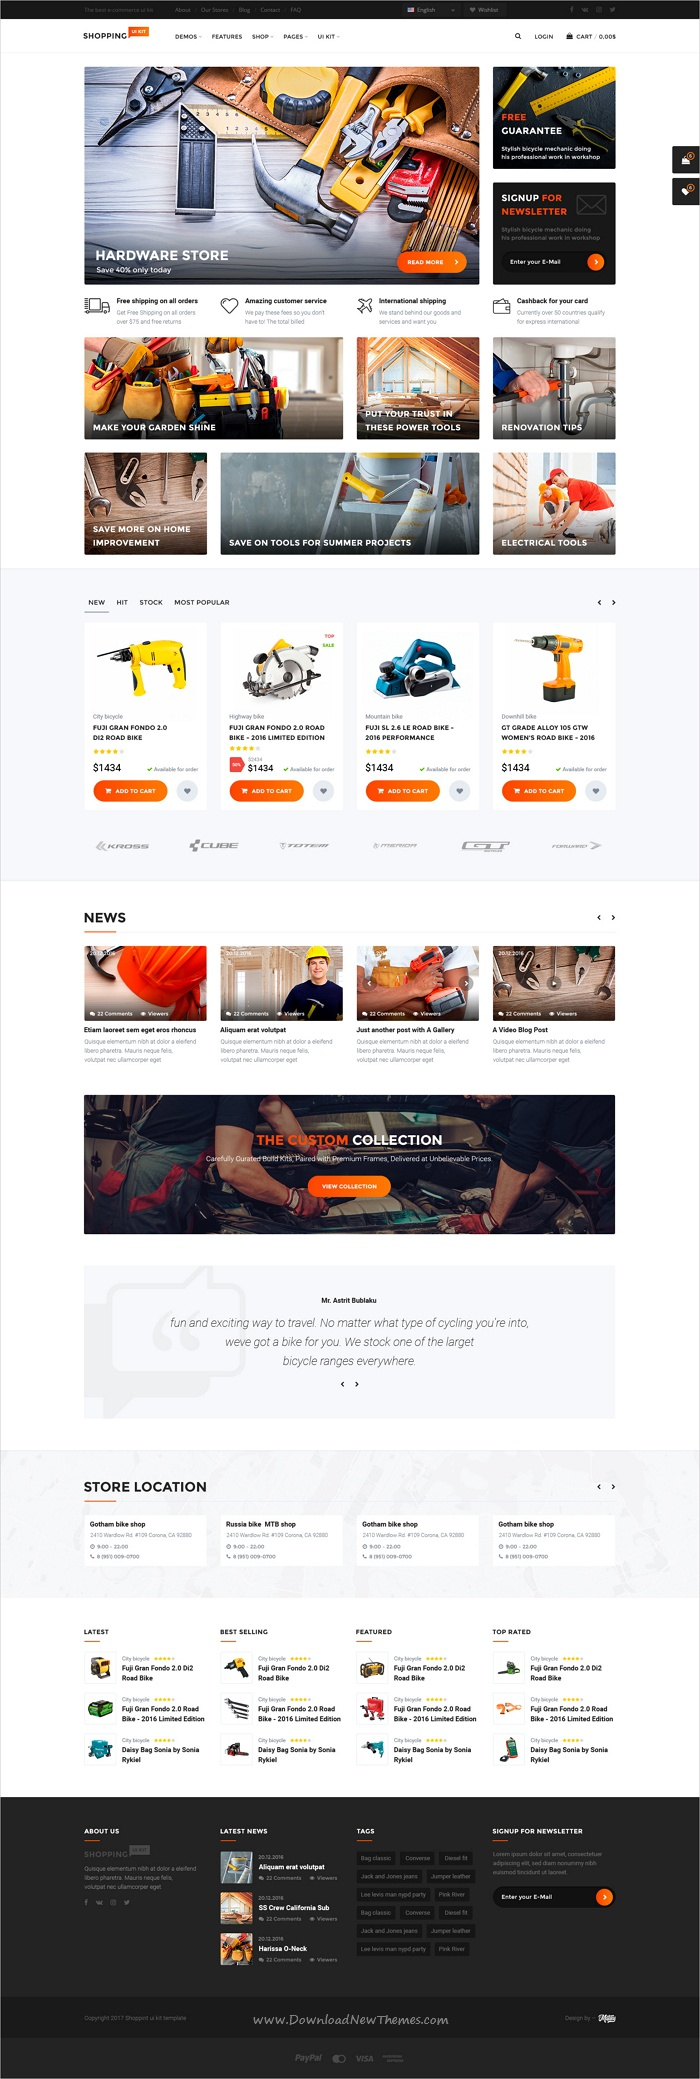 Shopping – multipurpose responsive e-commerce PSD template ...